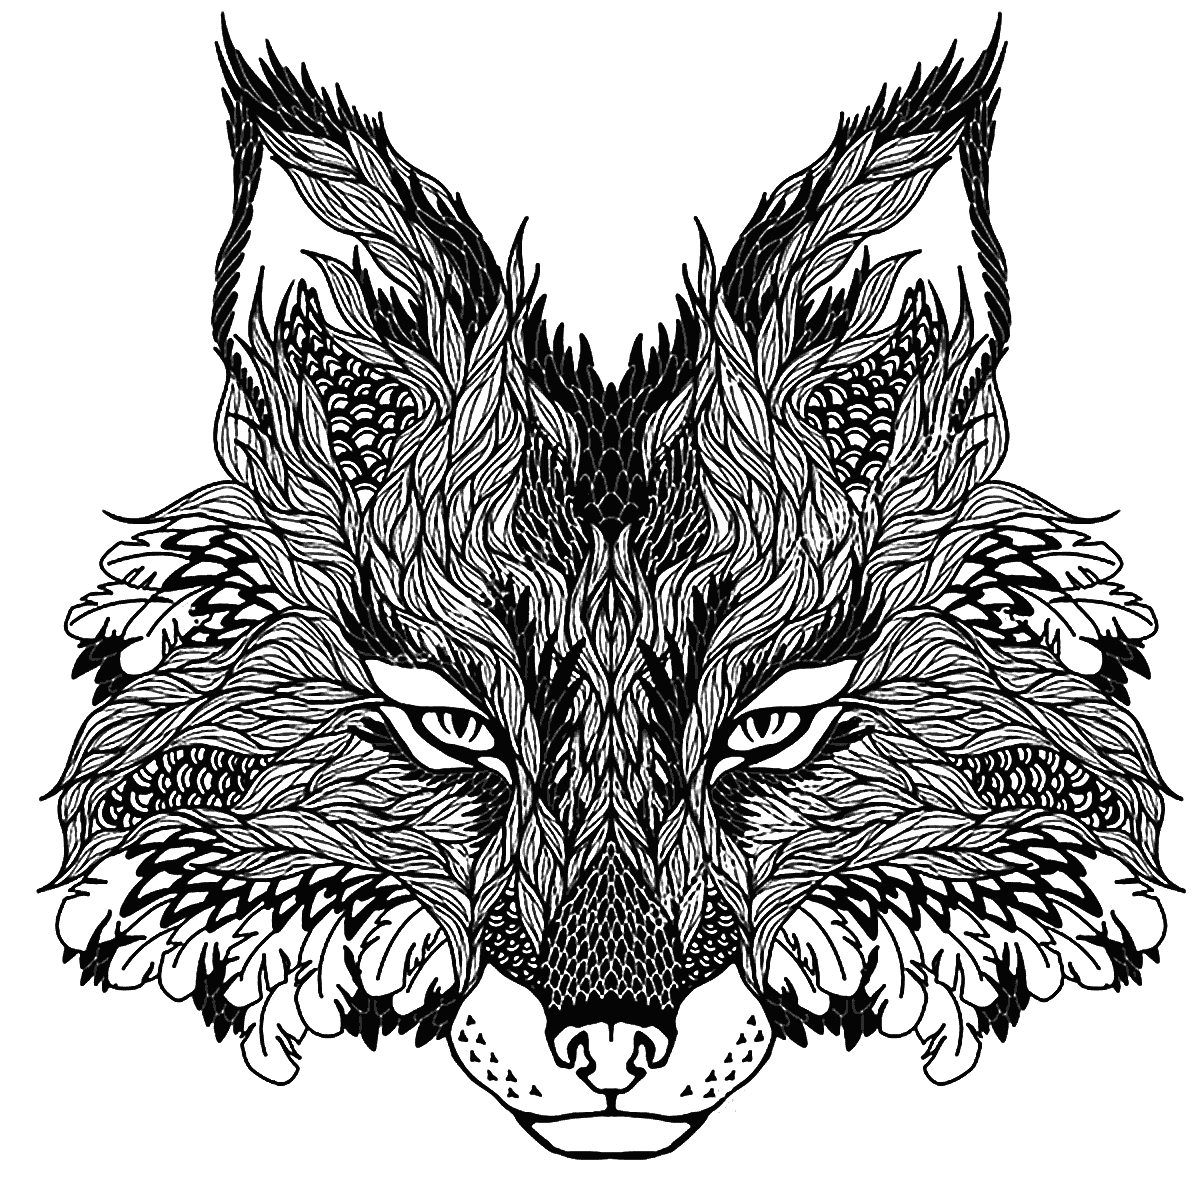 Concentrated wolf muzzle with pattern tattoo design